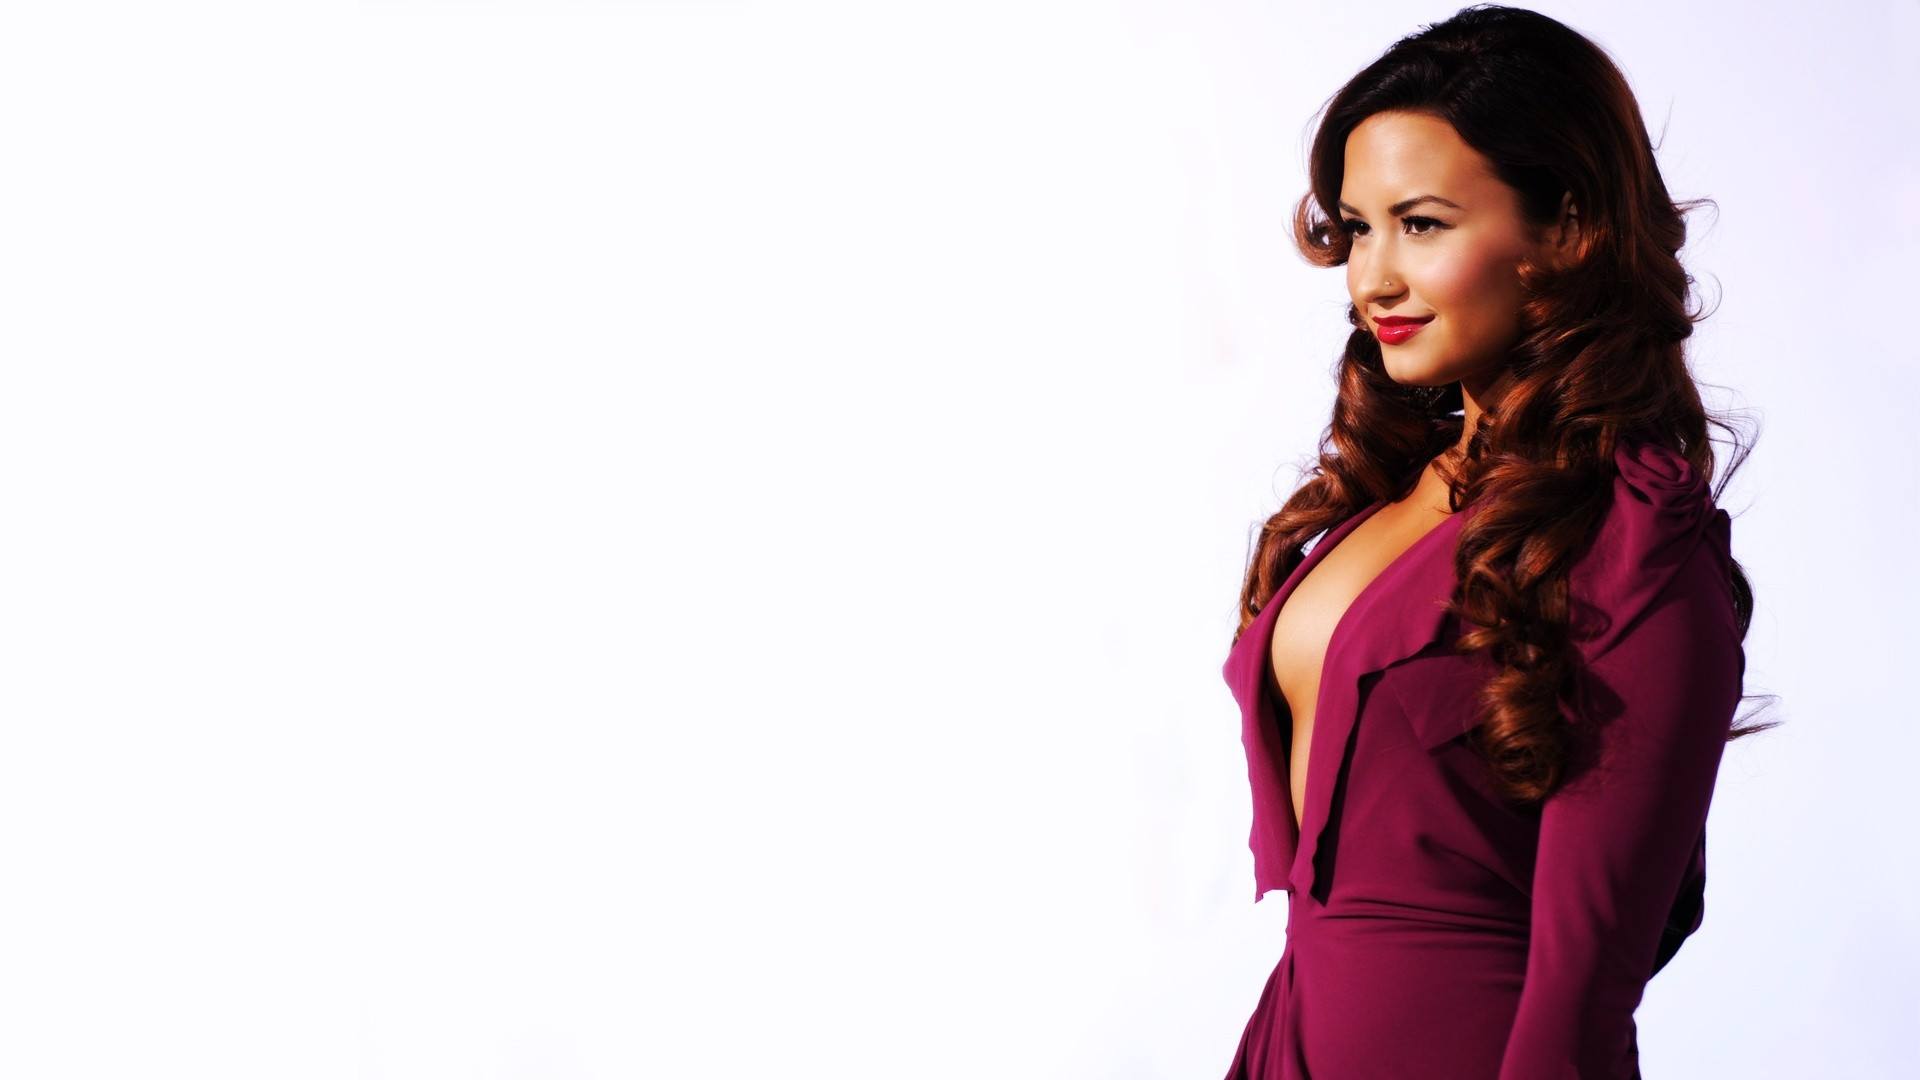 Hot Demi Lovato   Wallpaper High Definition High Quality Widescreen 1920x1080